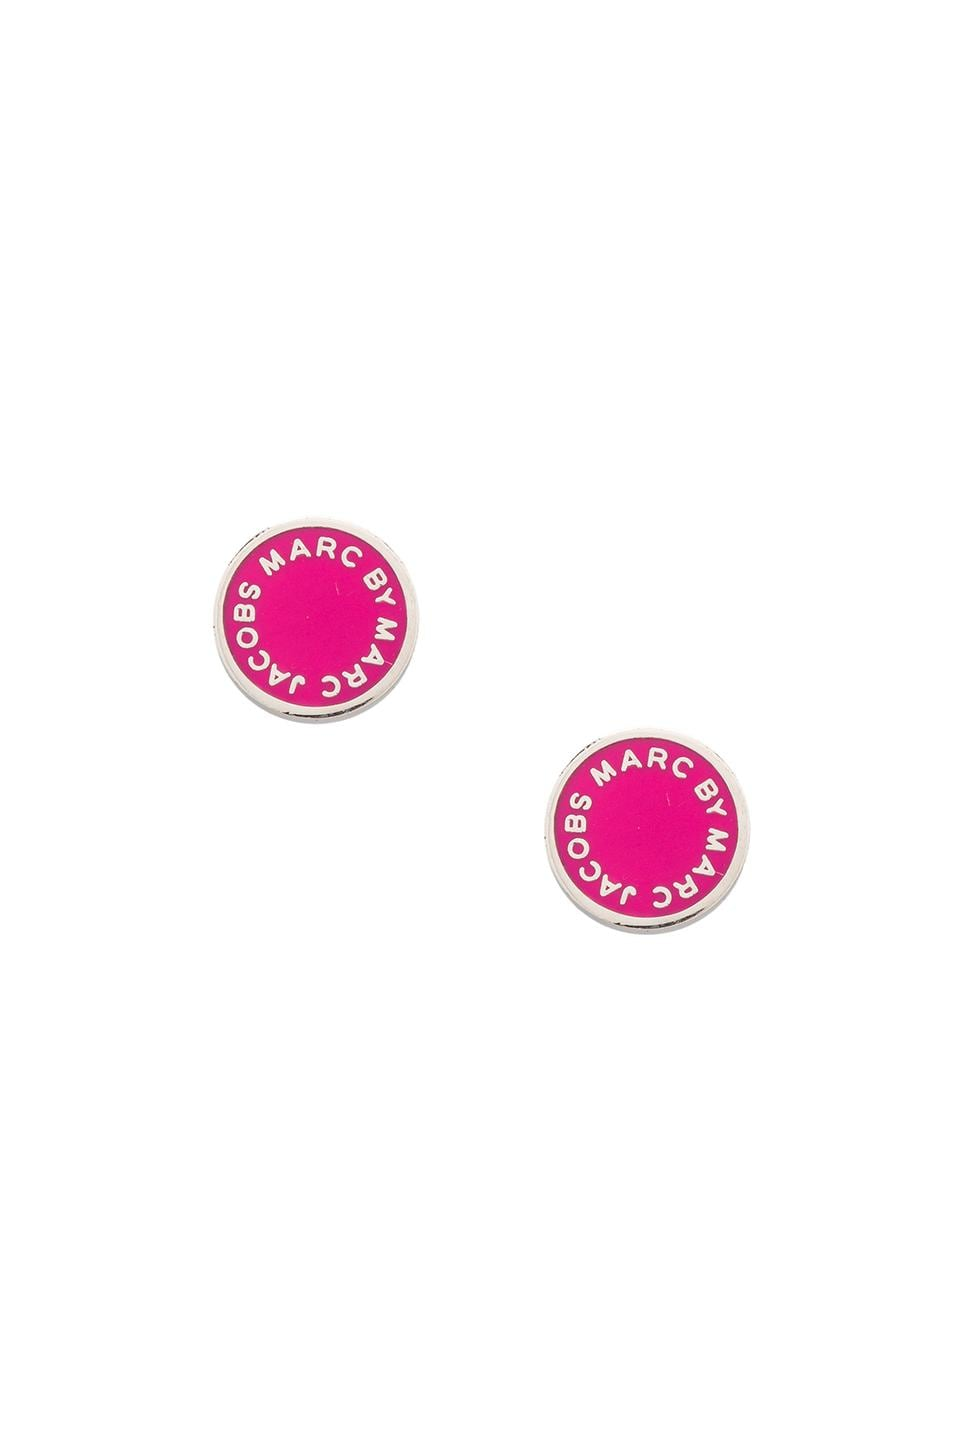 Marc by Marc Jacobs Enamel Logo Disc Studs in Pop Pink (Argento)